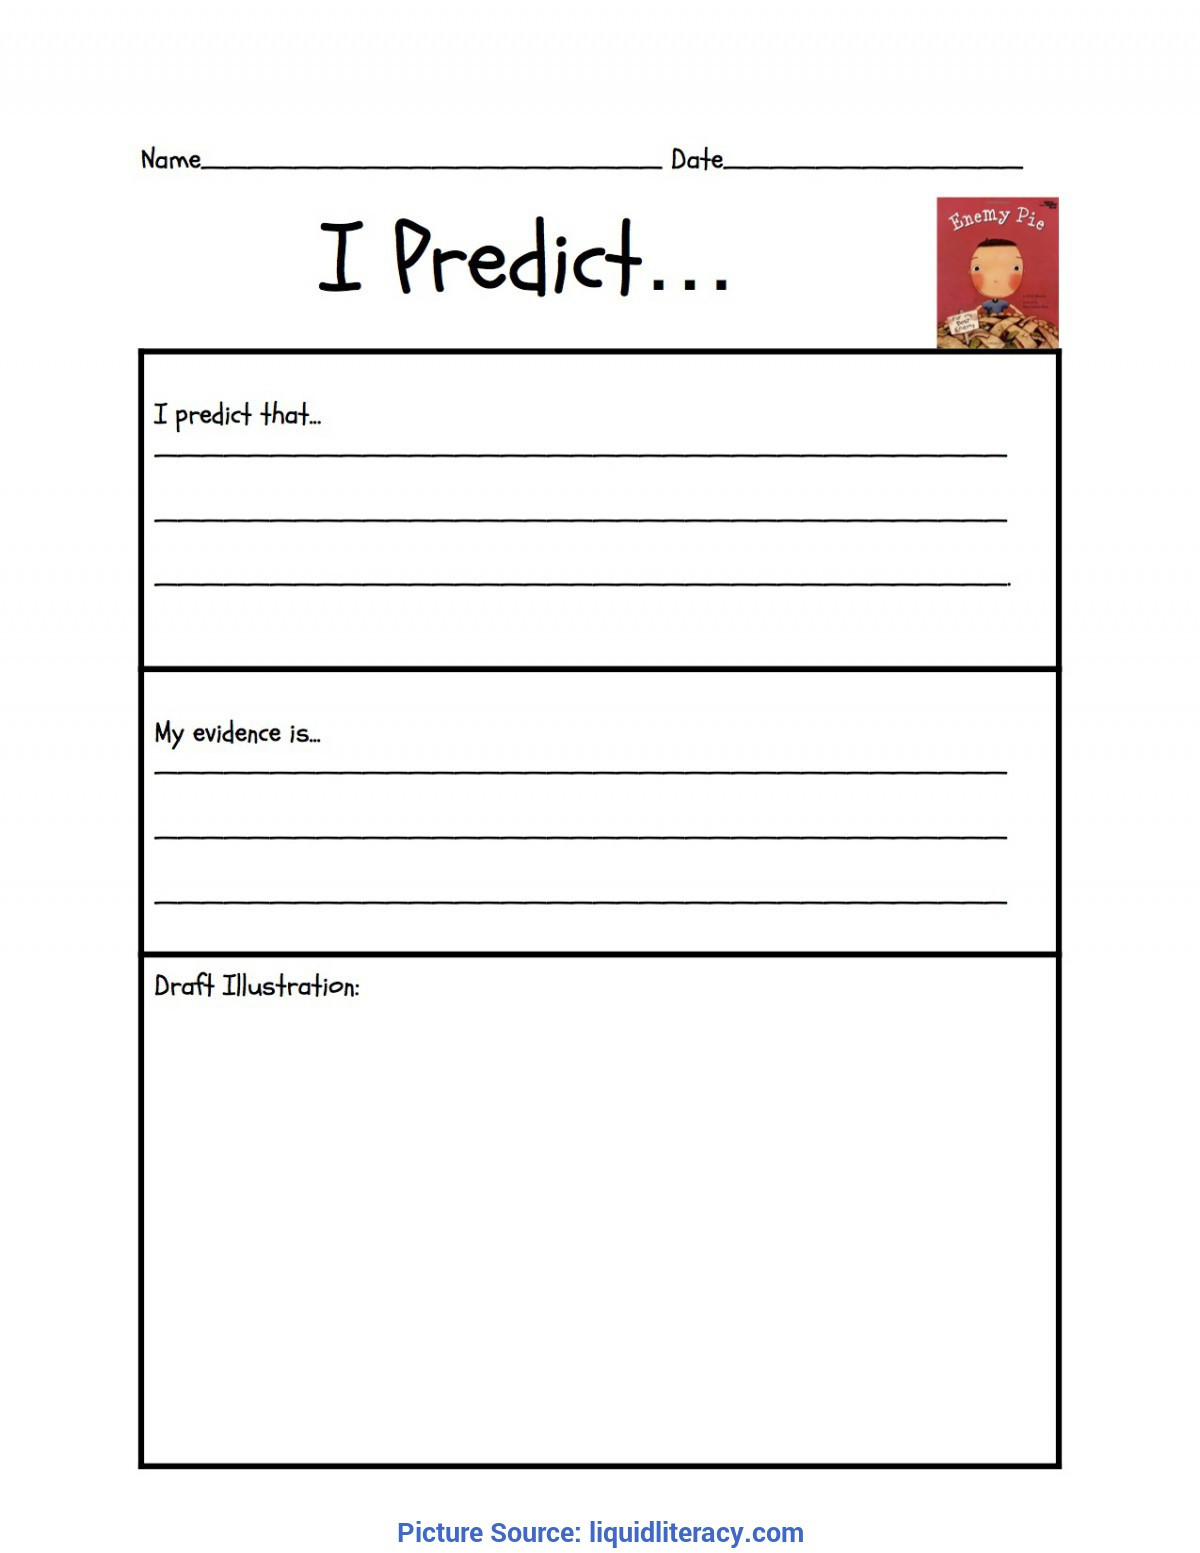 Making Predictions Worksheets 2nd Grade Workshop Classroom Making Inferences Mini Lessons